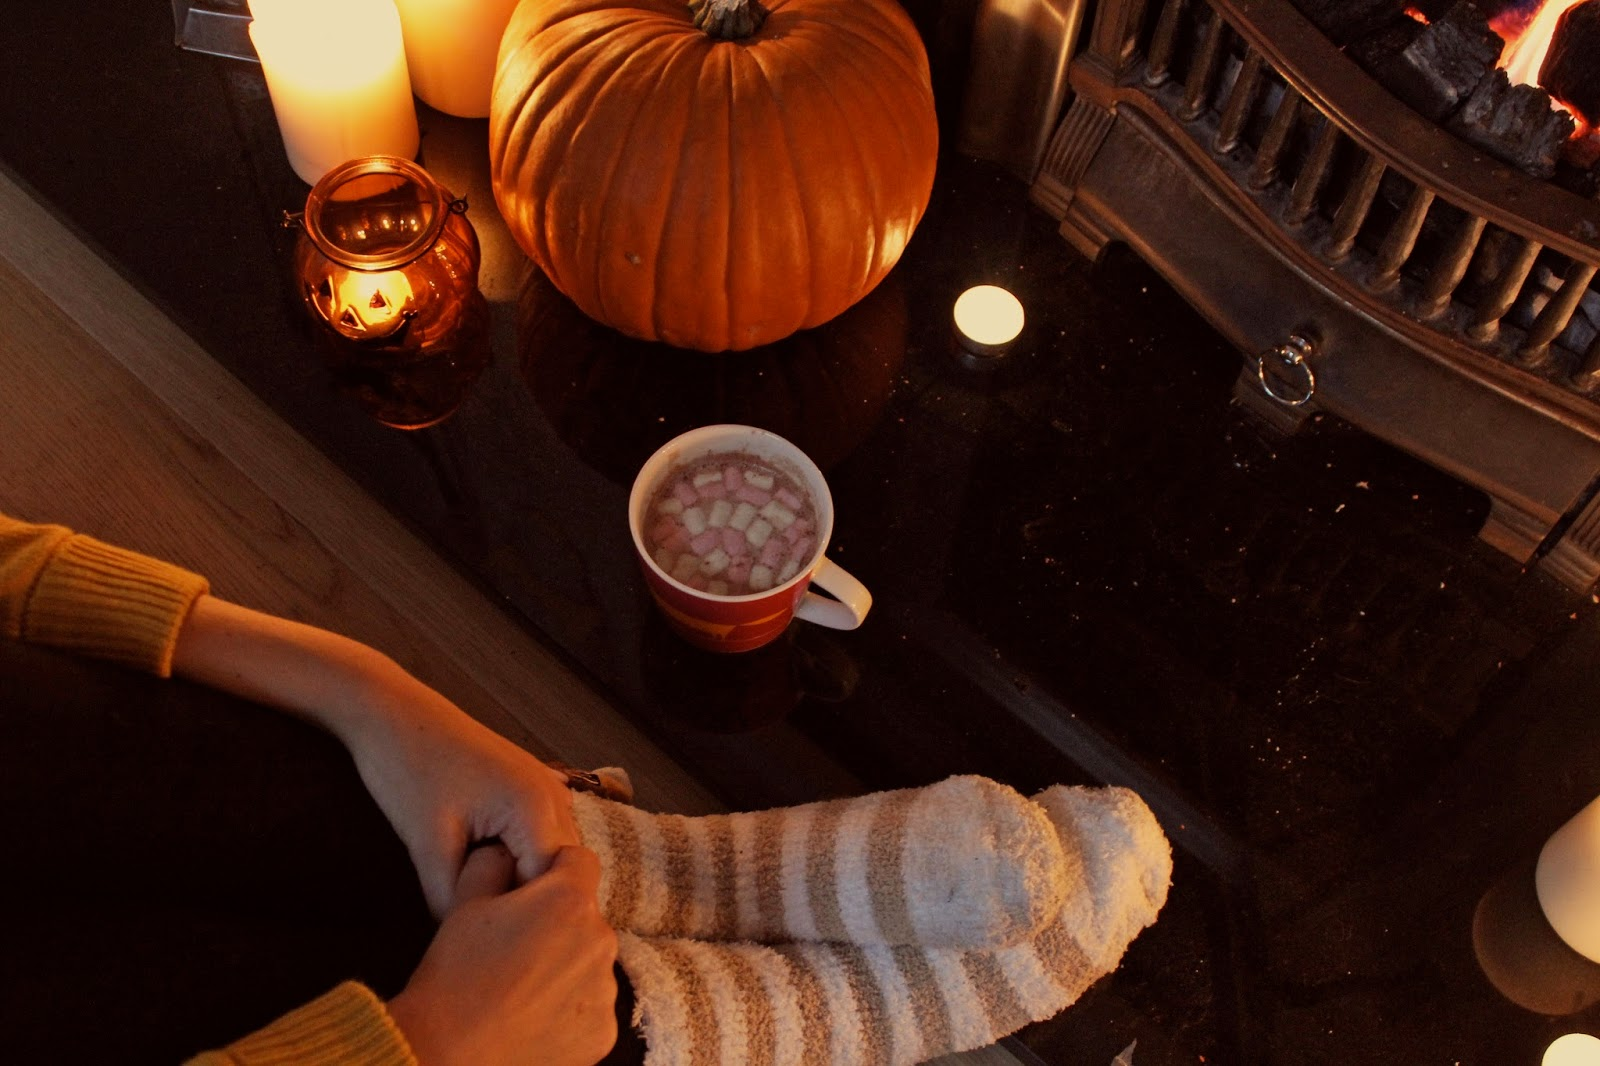 Fall Winter Wallpaper Free 8tracks Radio Cozy Autumn Days 19 Songs Free And